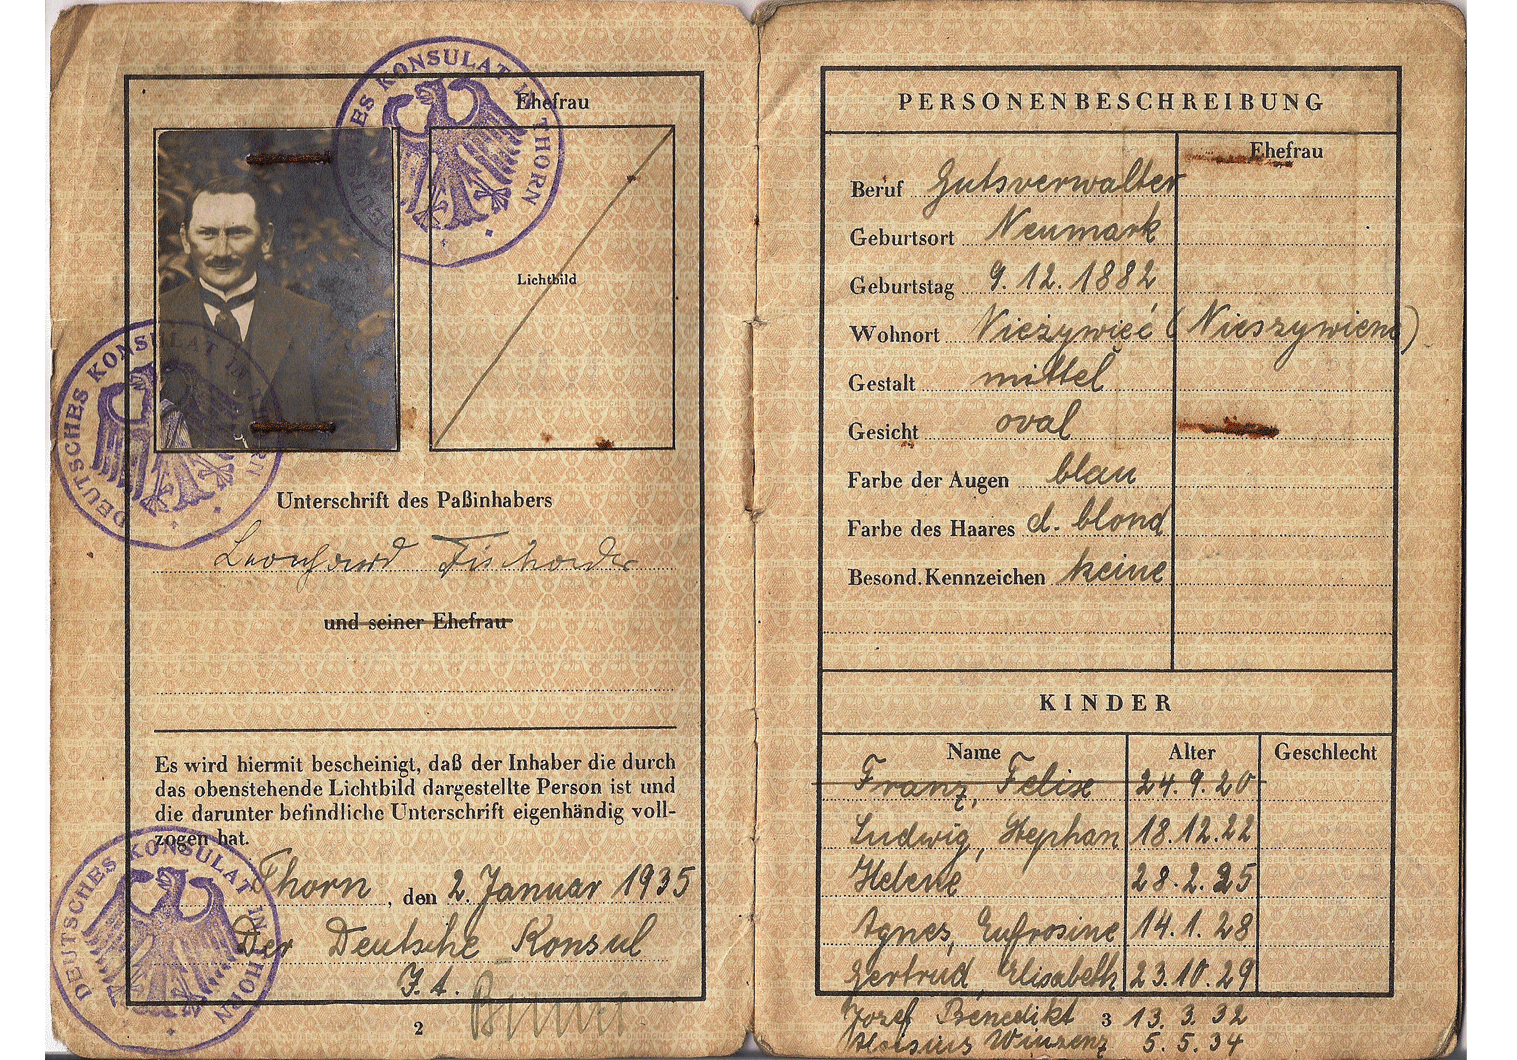 1935 German passport